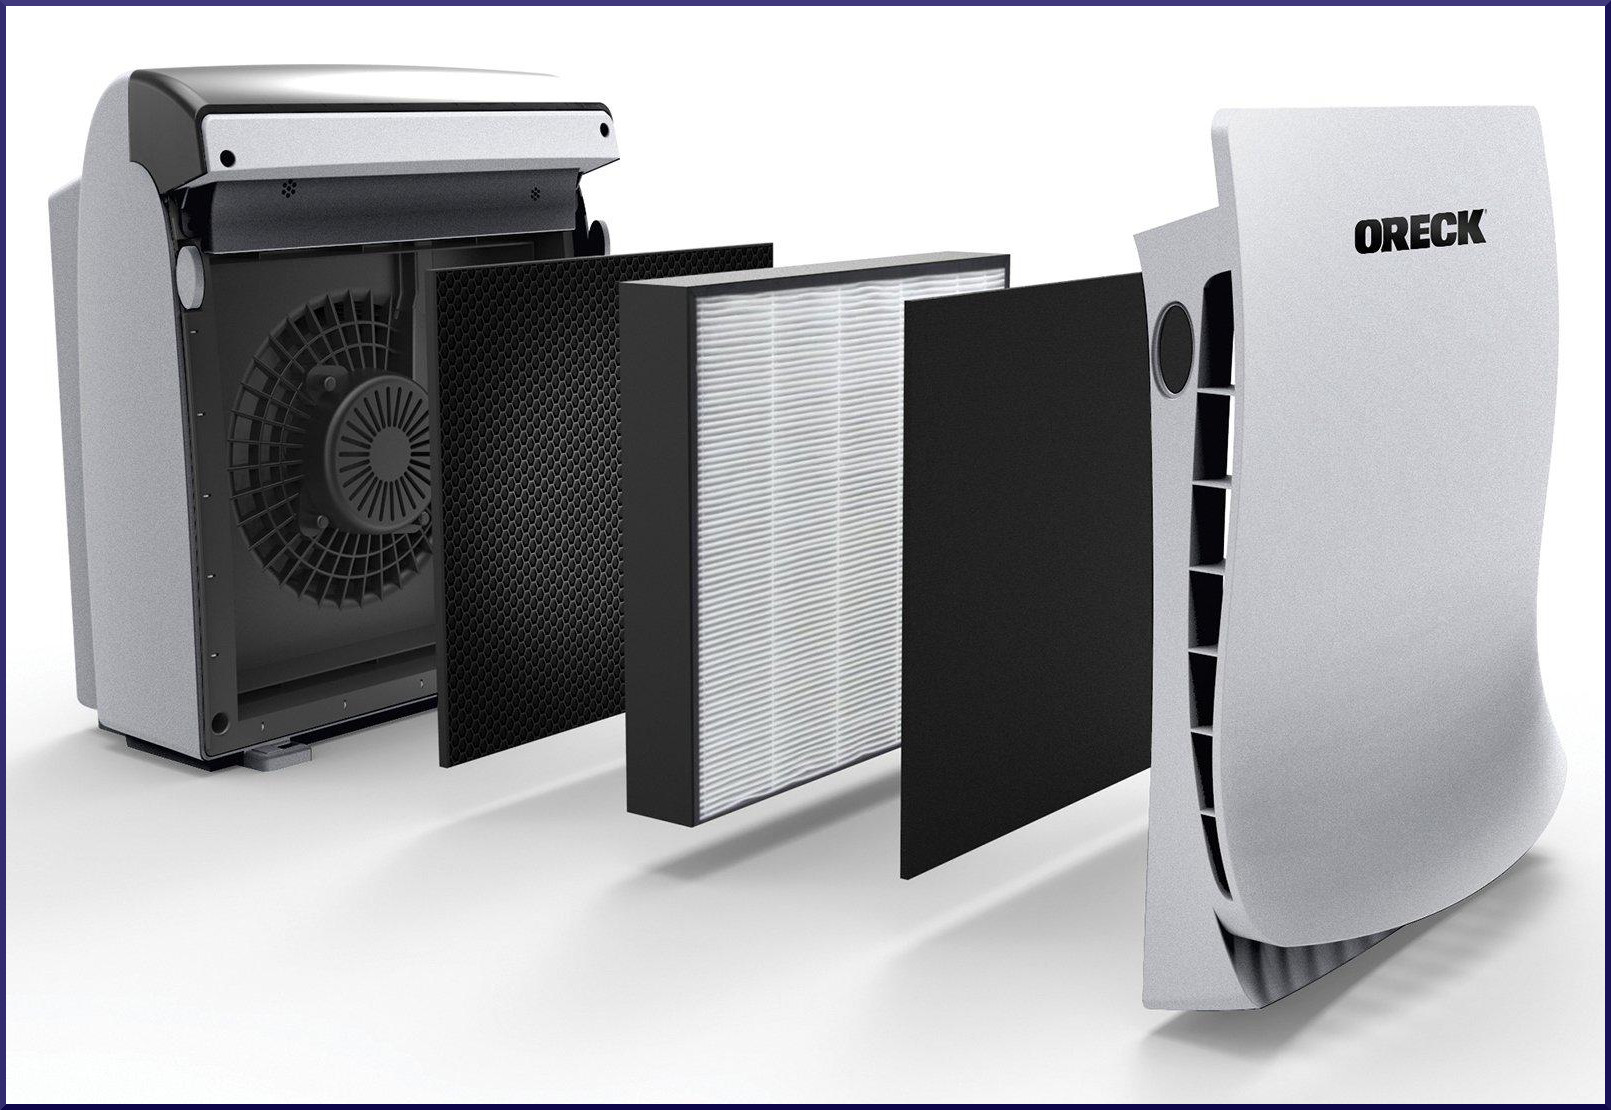 Filters for Oreck Air Purifiers